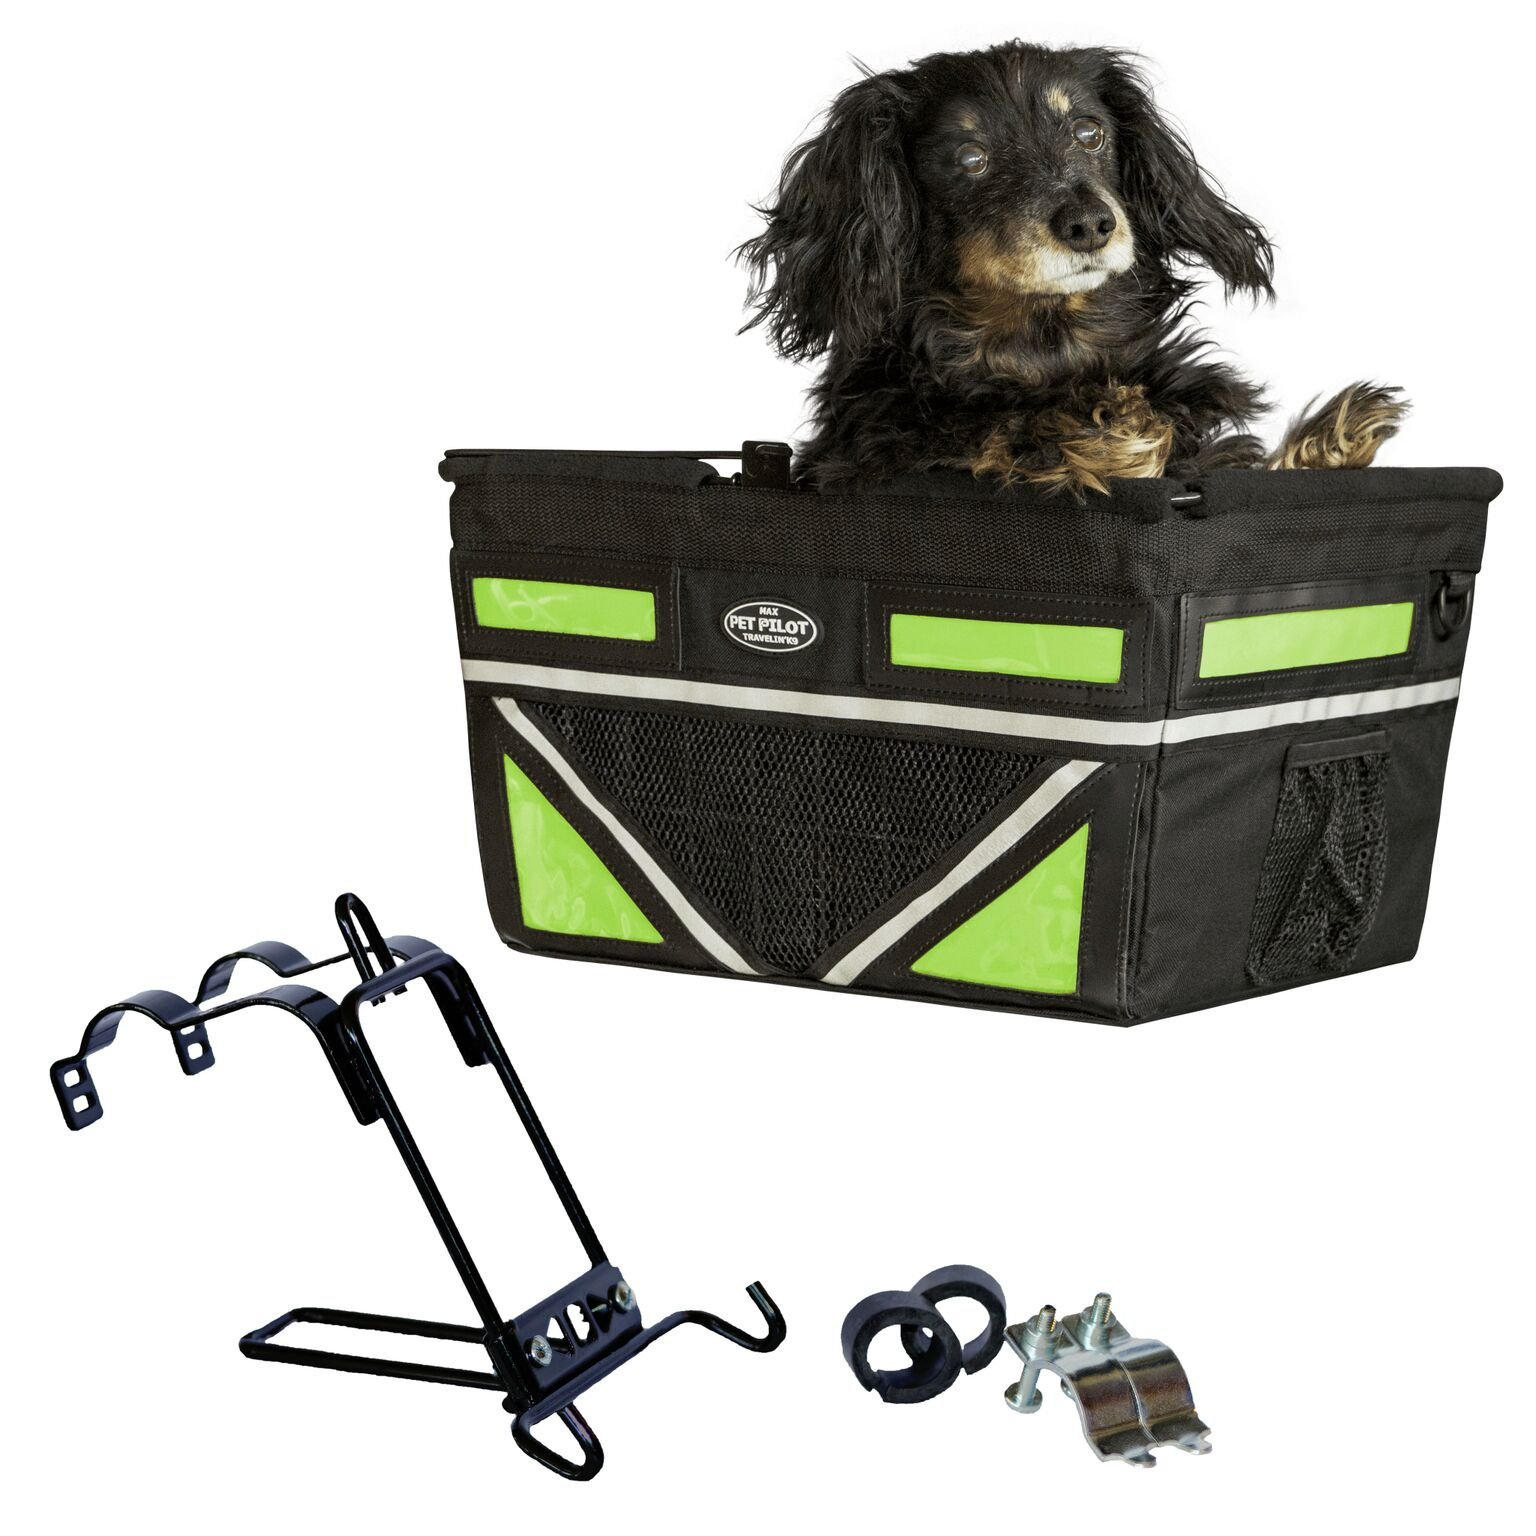 Travelin K9 Pet-Pilot MAX Dog Bicycle Basket Carrier | 2019 Model with 9 Color Options for Your Bike (NEON Green) by Travelin K9